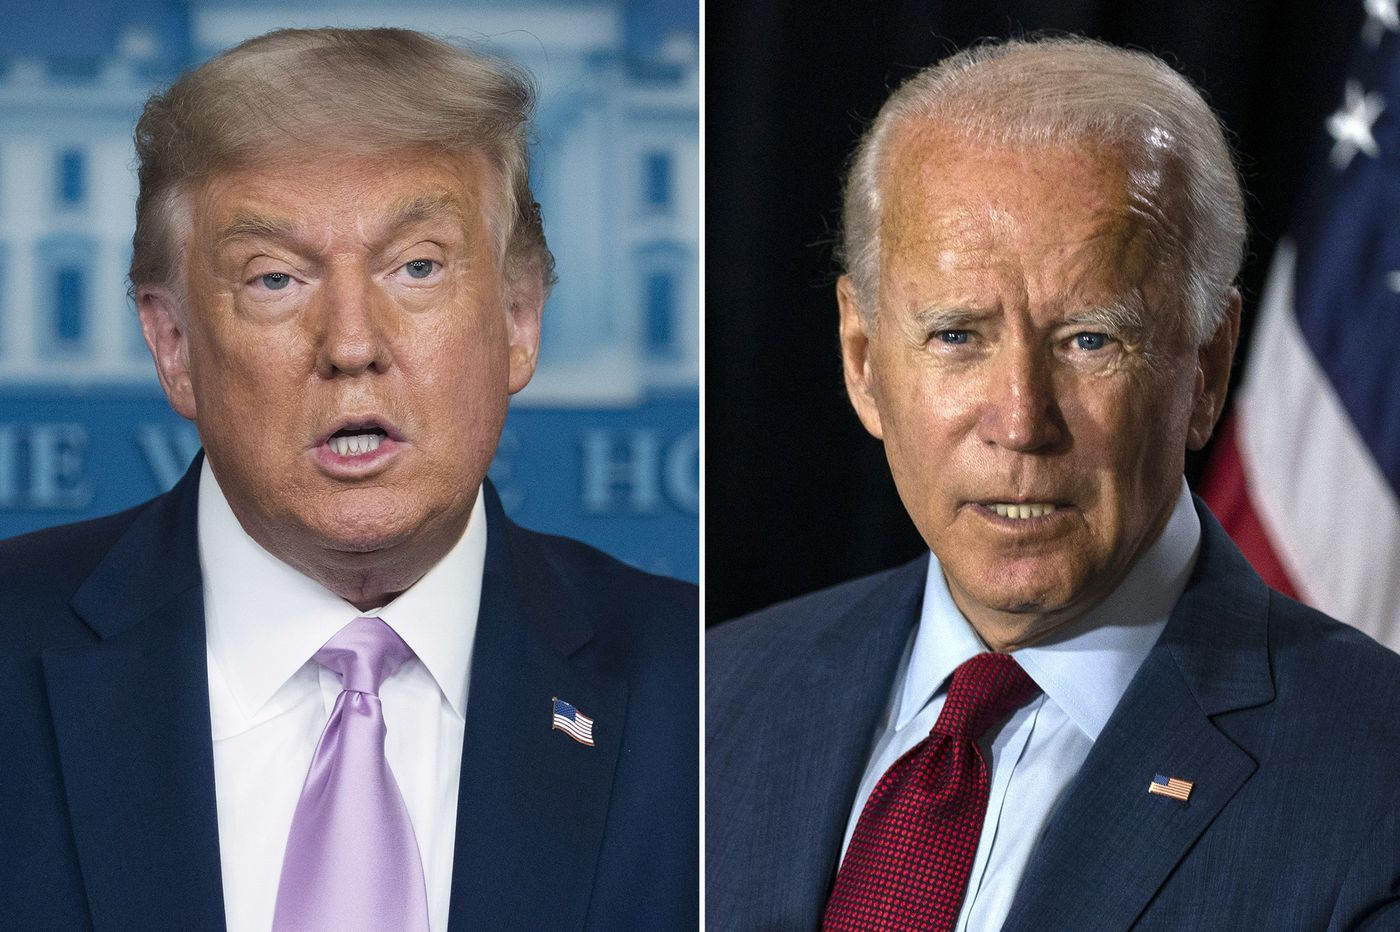 Biden's GOP backers easily outnumbered Trump's Democratic supporters at the conventions